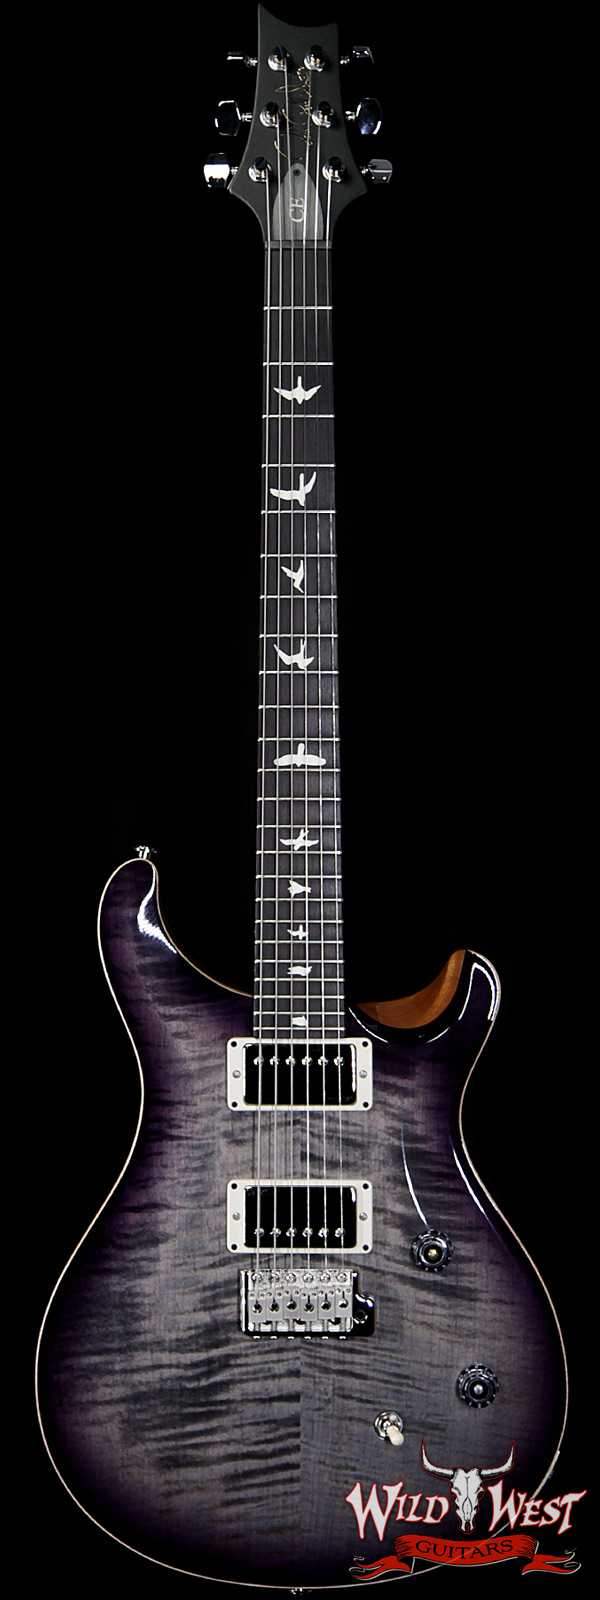 PRS Wild West Guitars Special Run CE 24 Flame Top Painted Neck 57/08 Pickups Faded Gray Black Purple Burst 292245